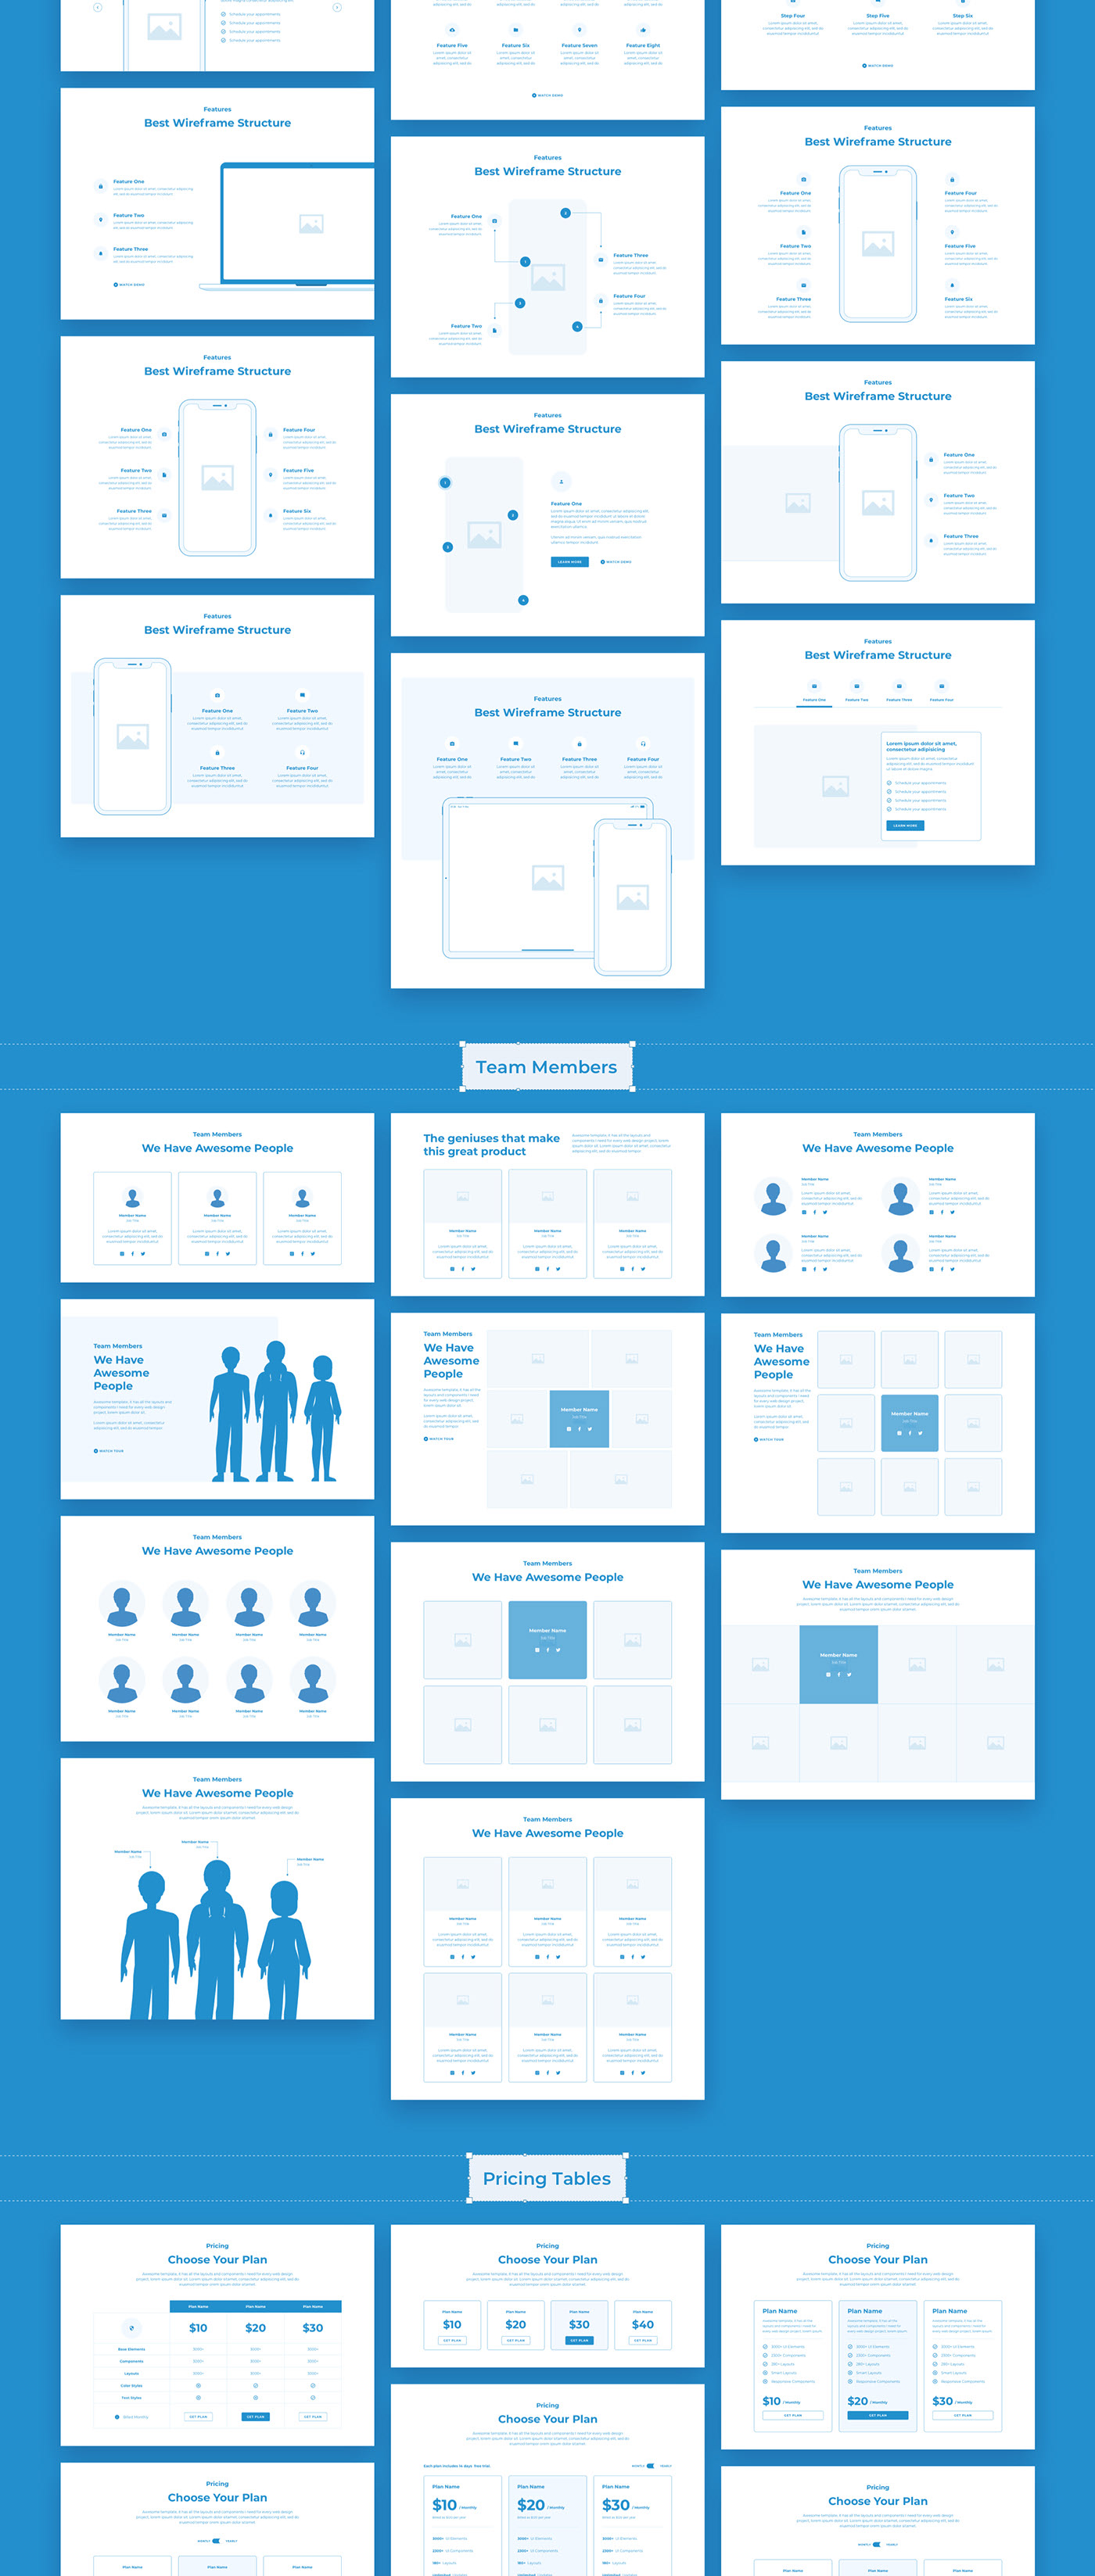 440abb57728315.5f82276d394ad - Wireland - Wireframe Library for Web Design Projects - Sketch Template